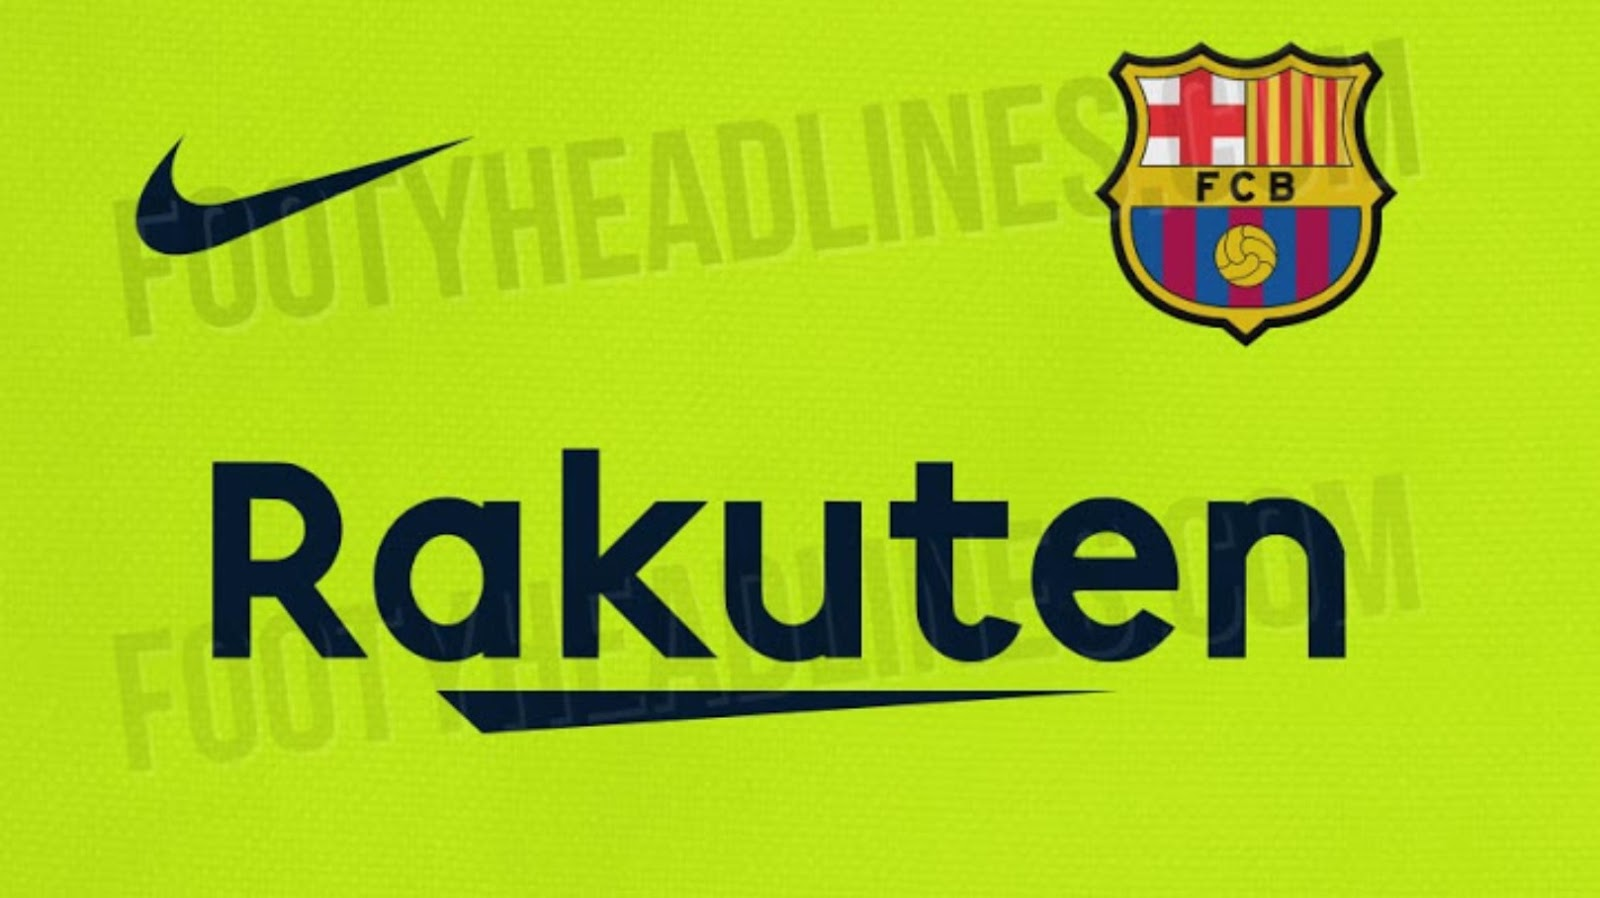 New Barcelona Away kit featured 2018-19 leaked